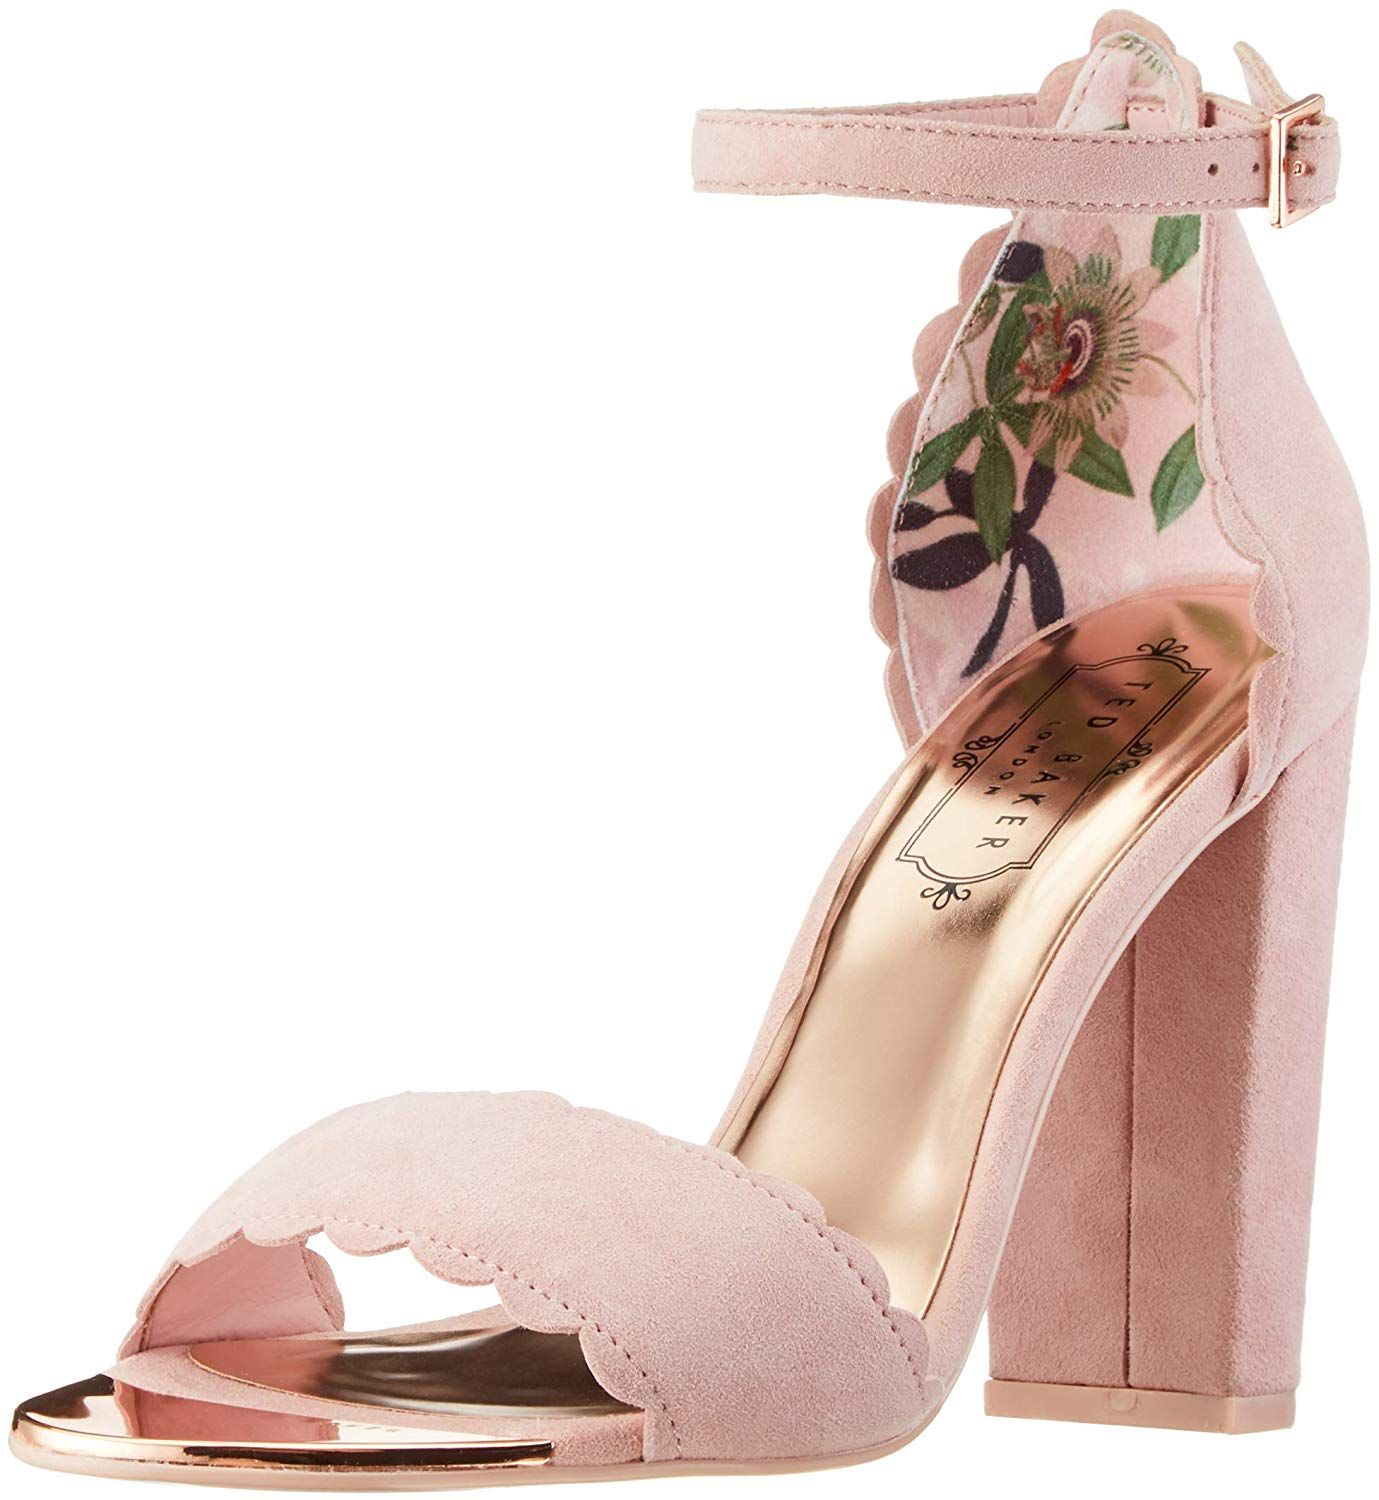 cf572393a473c Ted Baker Women's Raidha Open Toe Sandals: Amazon.co.uk: Shoes ...